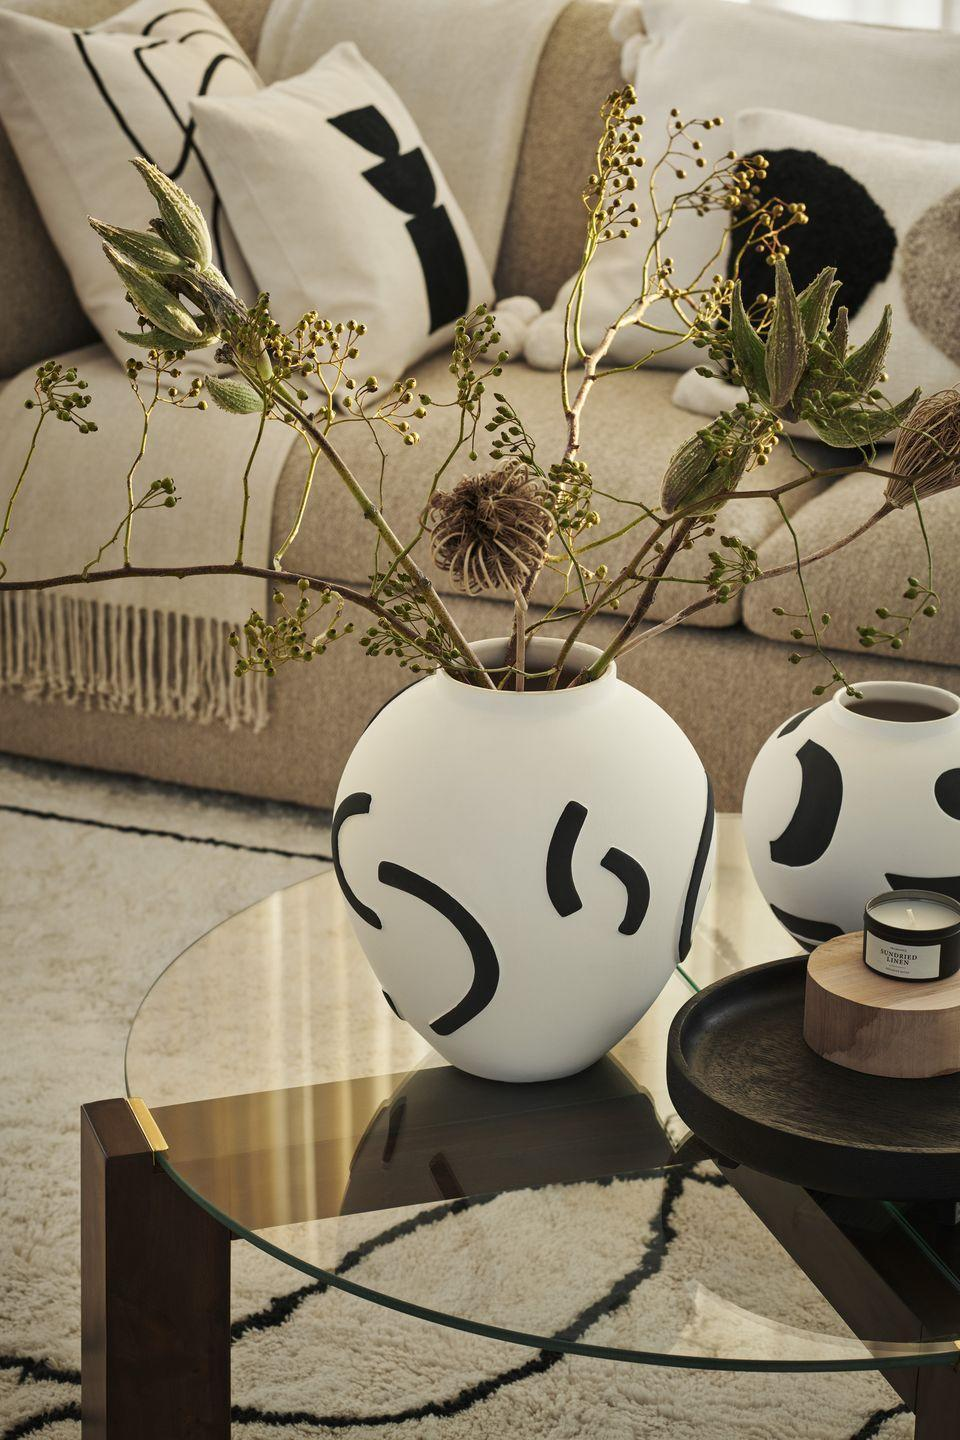 """<p>Hit refresh on your living room accessories with H&M Home's new scene-stealing ceramic vases, available in a range of sizes. </p><p><strong>HB recommends... </strong>To create a stunning centrepiece, fill your vase with artificial blooms, dried foliage or pampas grass. They will last much longer than fresh flowers. </p><p><a class=""""link rapid-noclick-resp"""" href=""""https://go.redirectingat.com?id=127X1599956&url=https%3A%2F%2Fwww2.hm.com%2Fen_gb%2Fhome.html&sref=https%3A%2F%2Fwww.housebeautiful.com%2Fuk%2Flifestyle%2Fshopping%2Fg35116386%2Fhandm-home-spring%2F"""" rel=""""nofollow noopener"""" target=""""_blank"""" data-ylk=""""slk:SHOP H&M HOME"""">SHOP H&M HOME</a> </p>"""